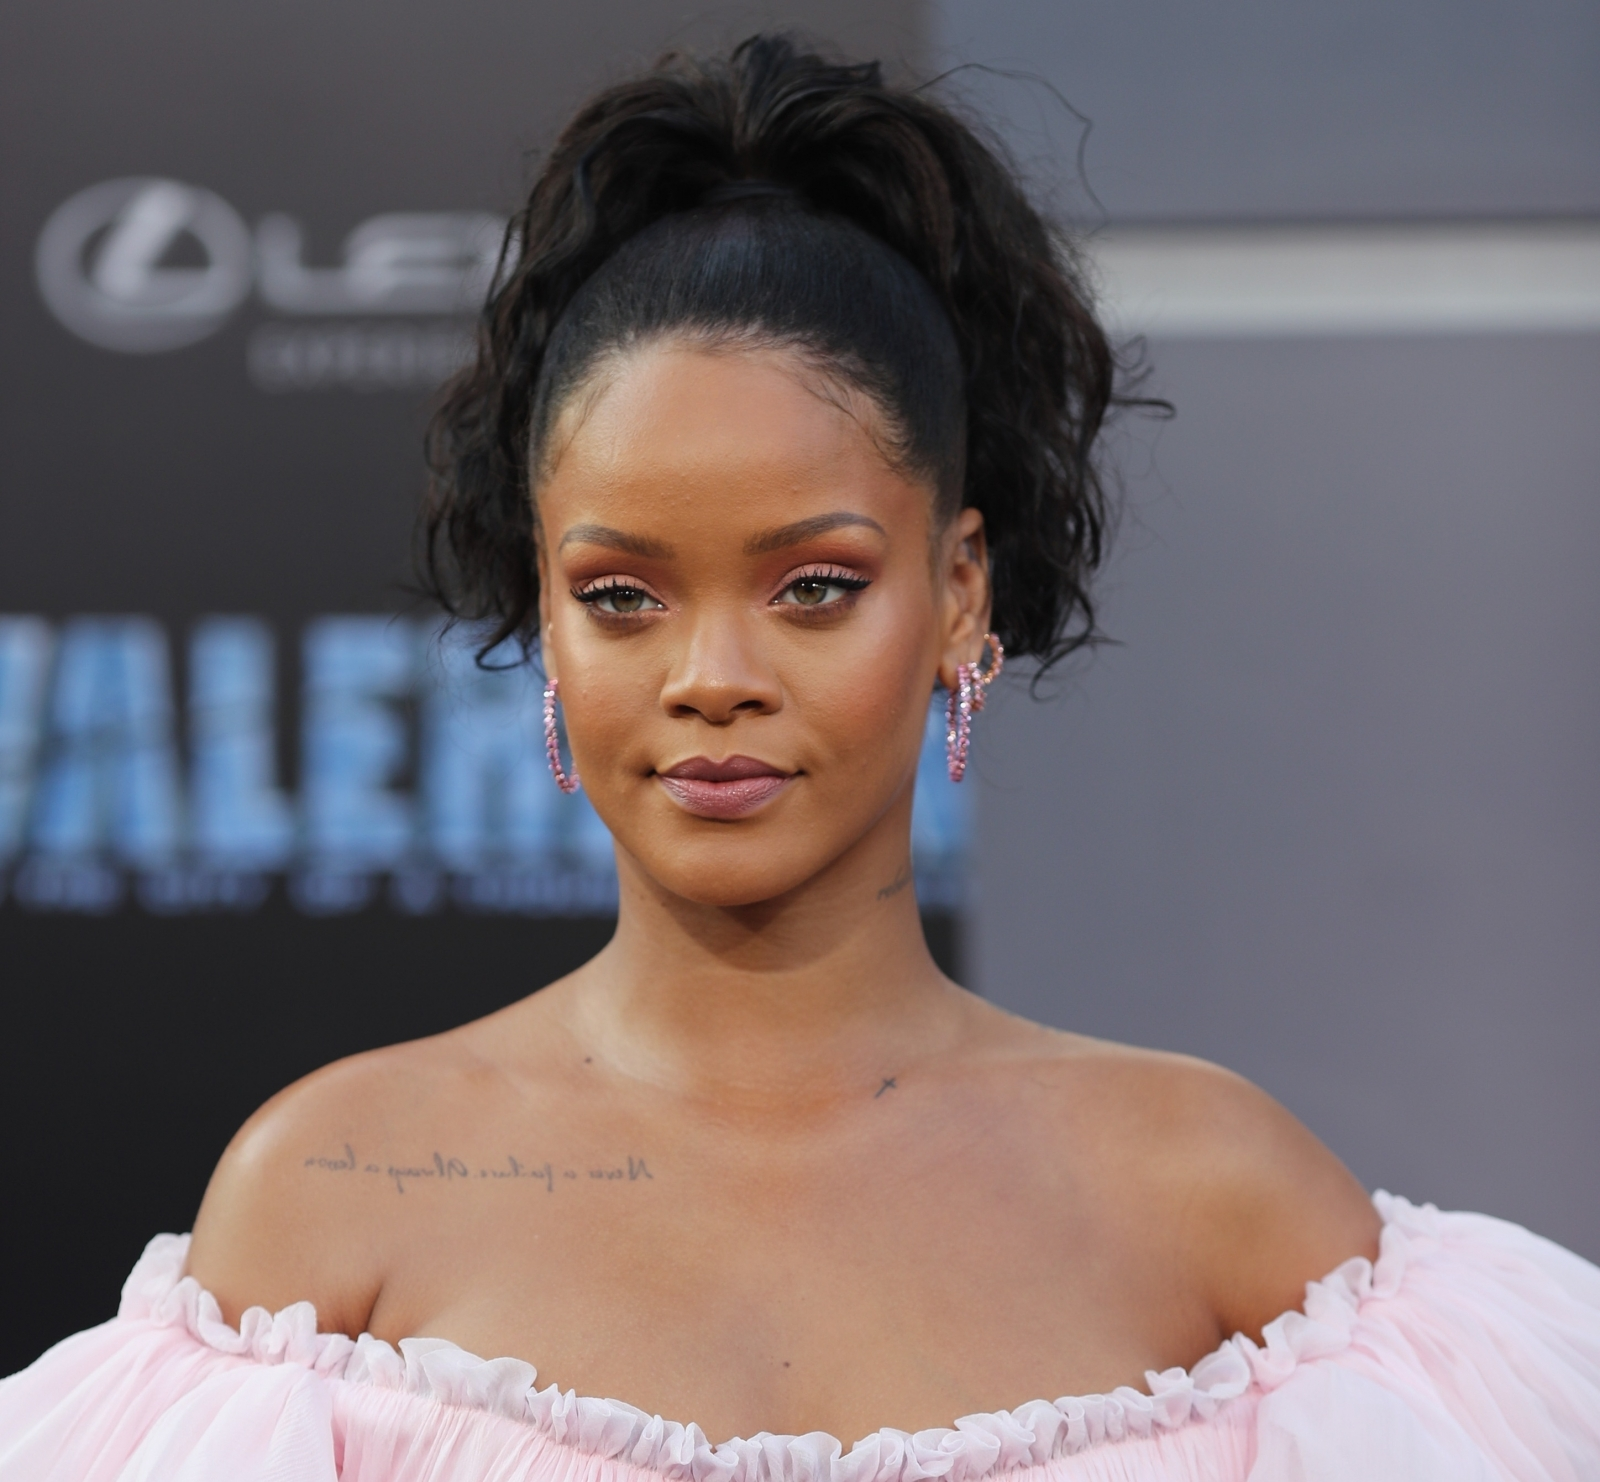 Rihanna Awes Fans With Eye Popping Photo The Most